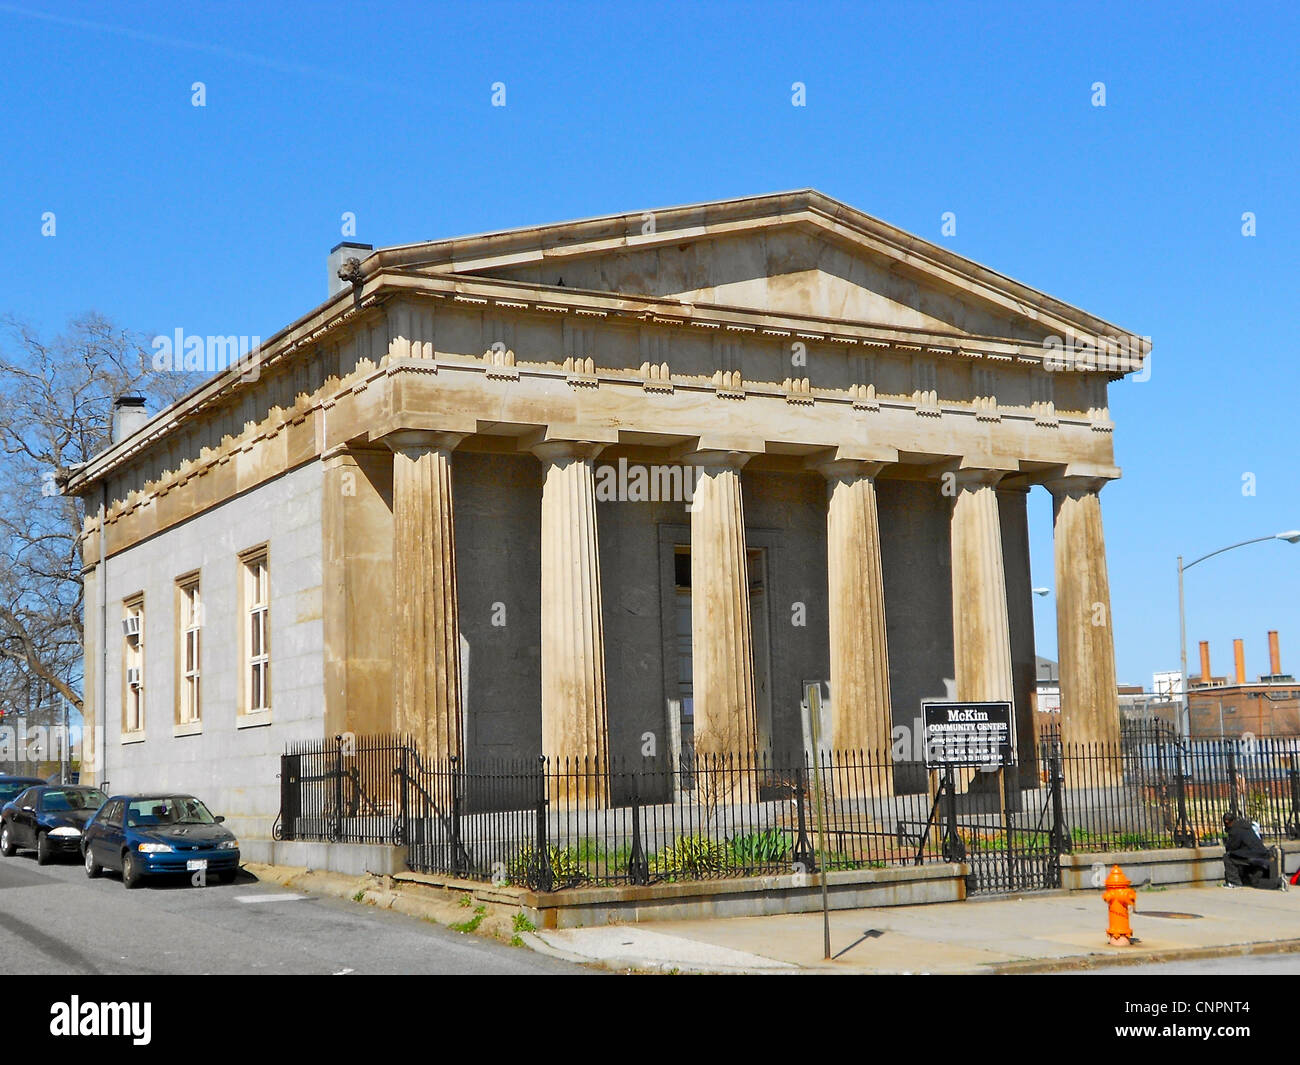 McKim's School on the NRHP since 1973 at 1120 E. Baltimore in Baltimore, Maryland. - Stock Image